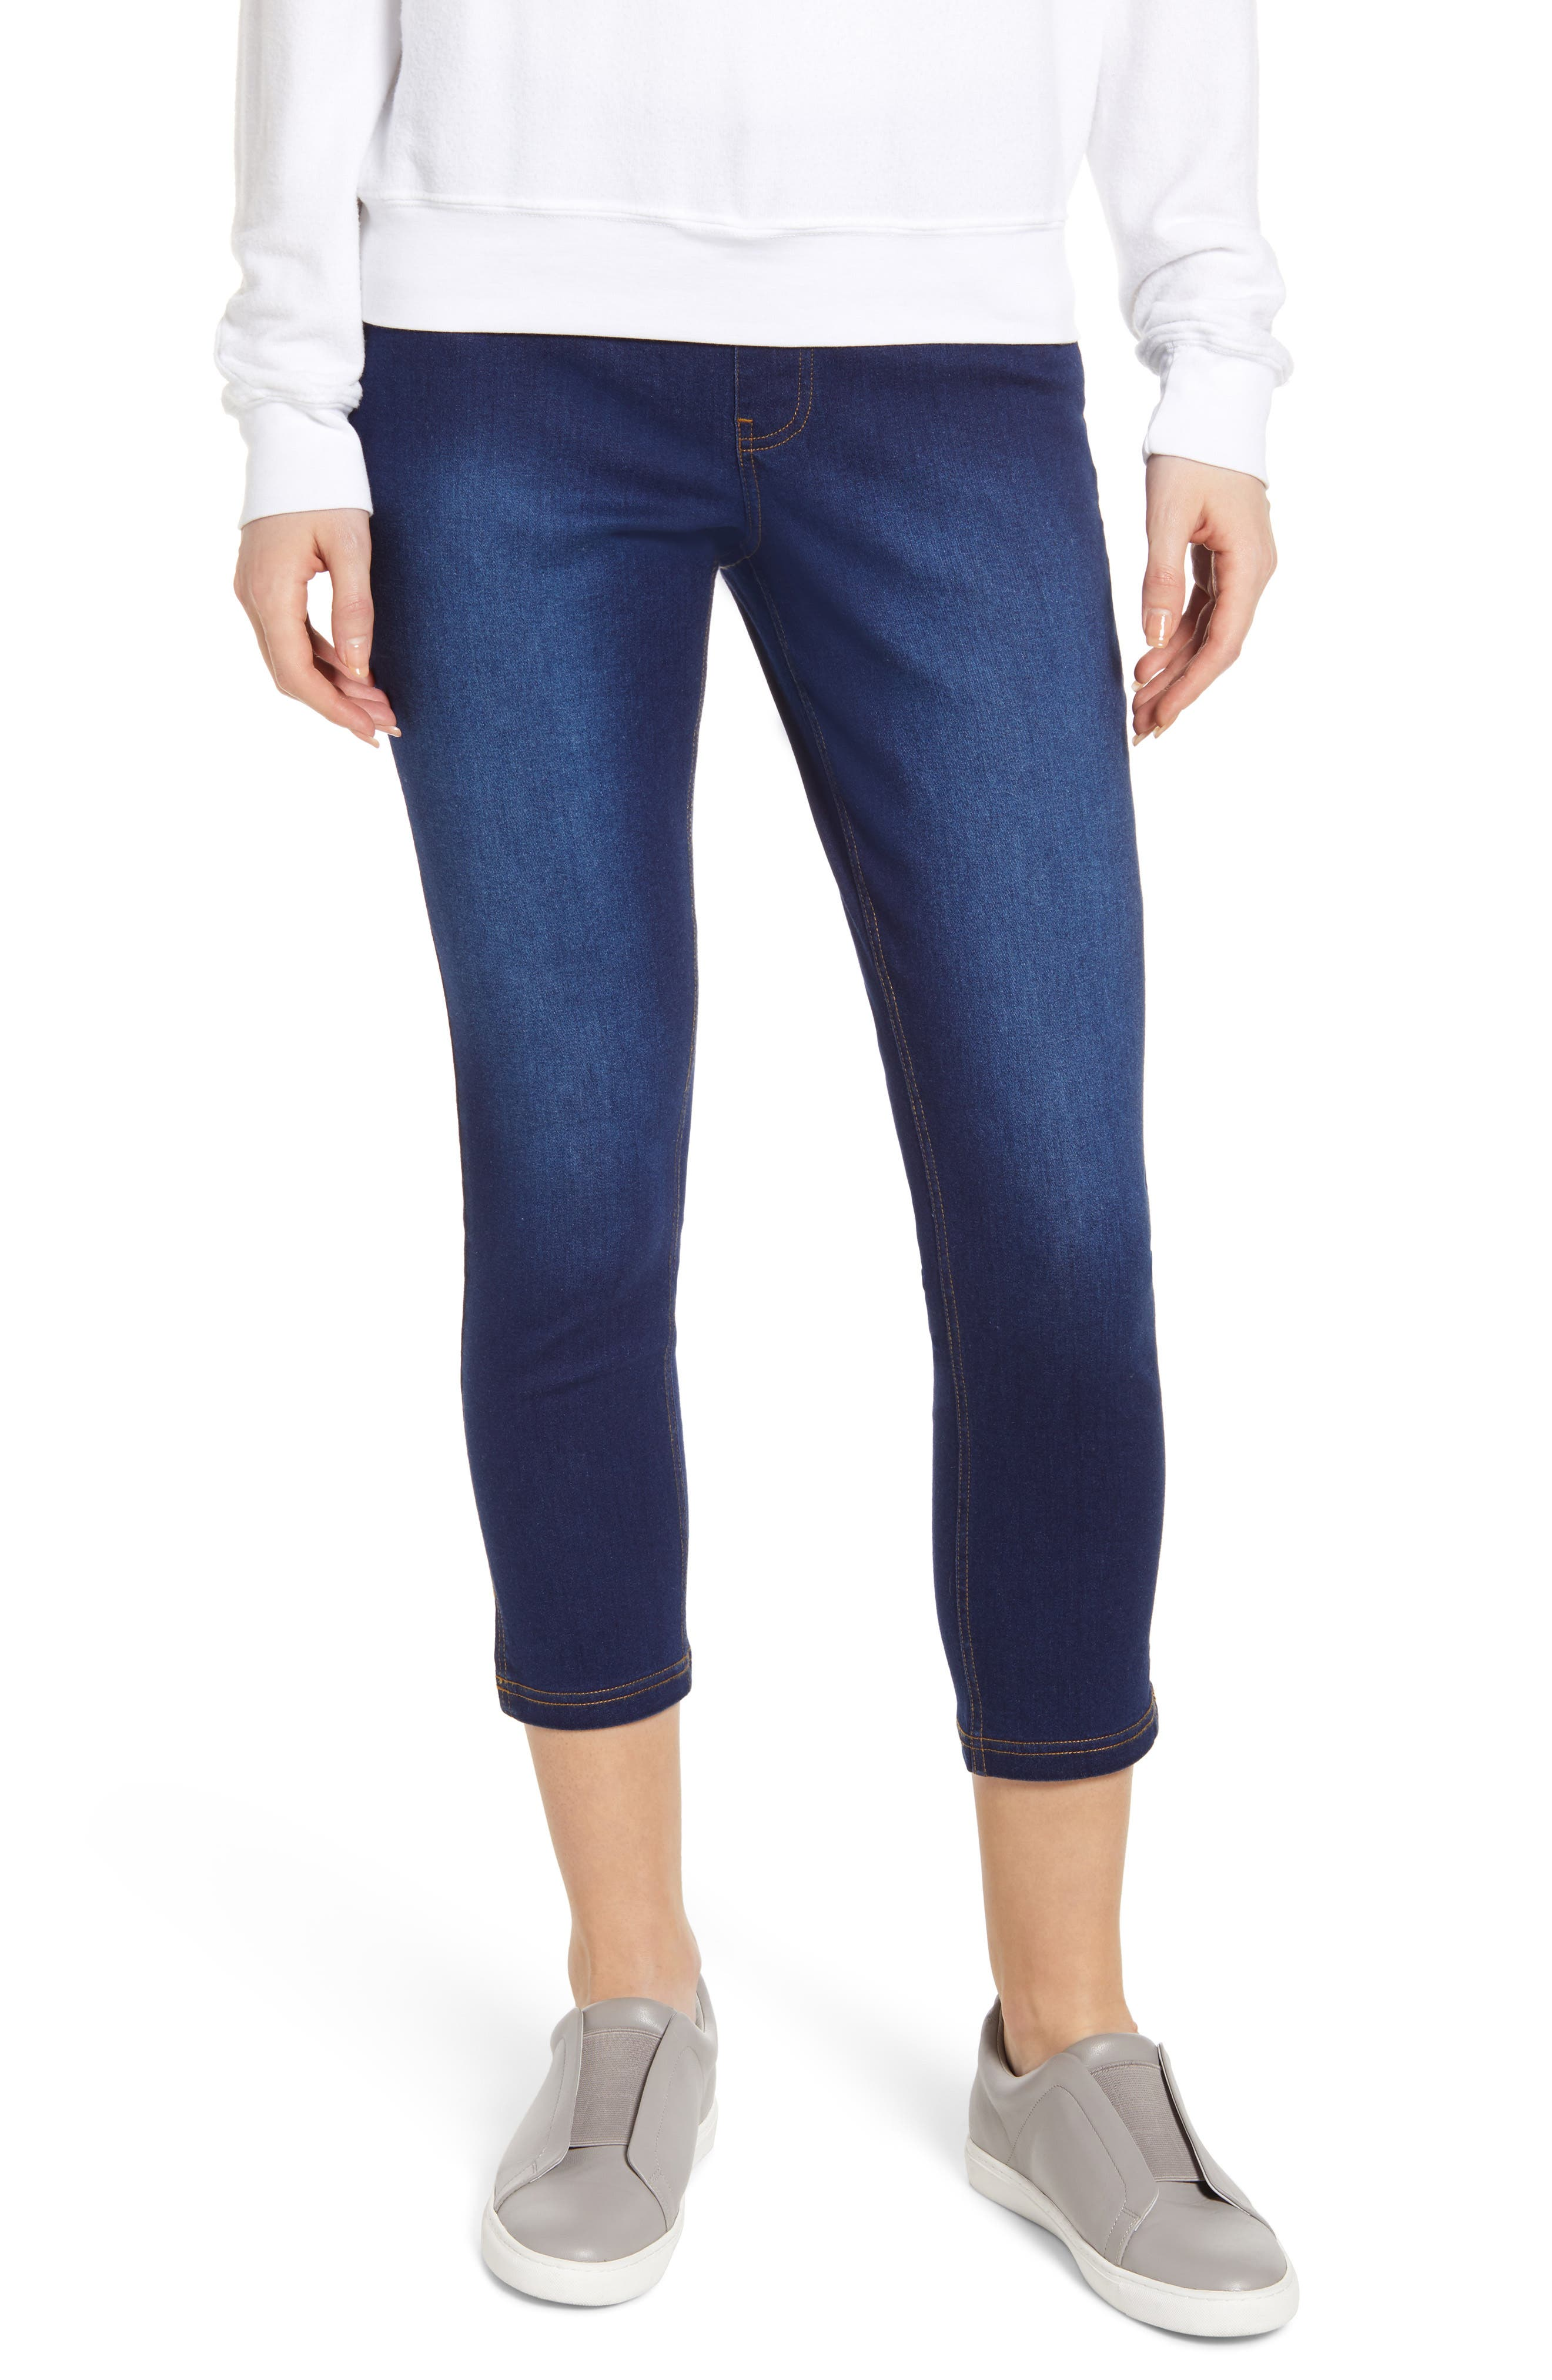 Plus Size Hue Slit Hem Capri Denim Leggings, Blue